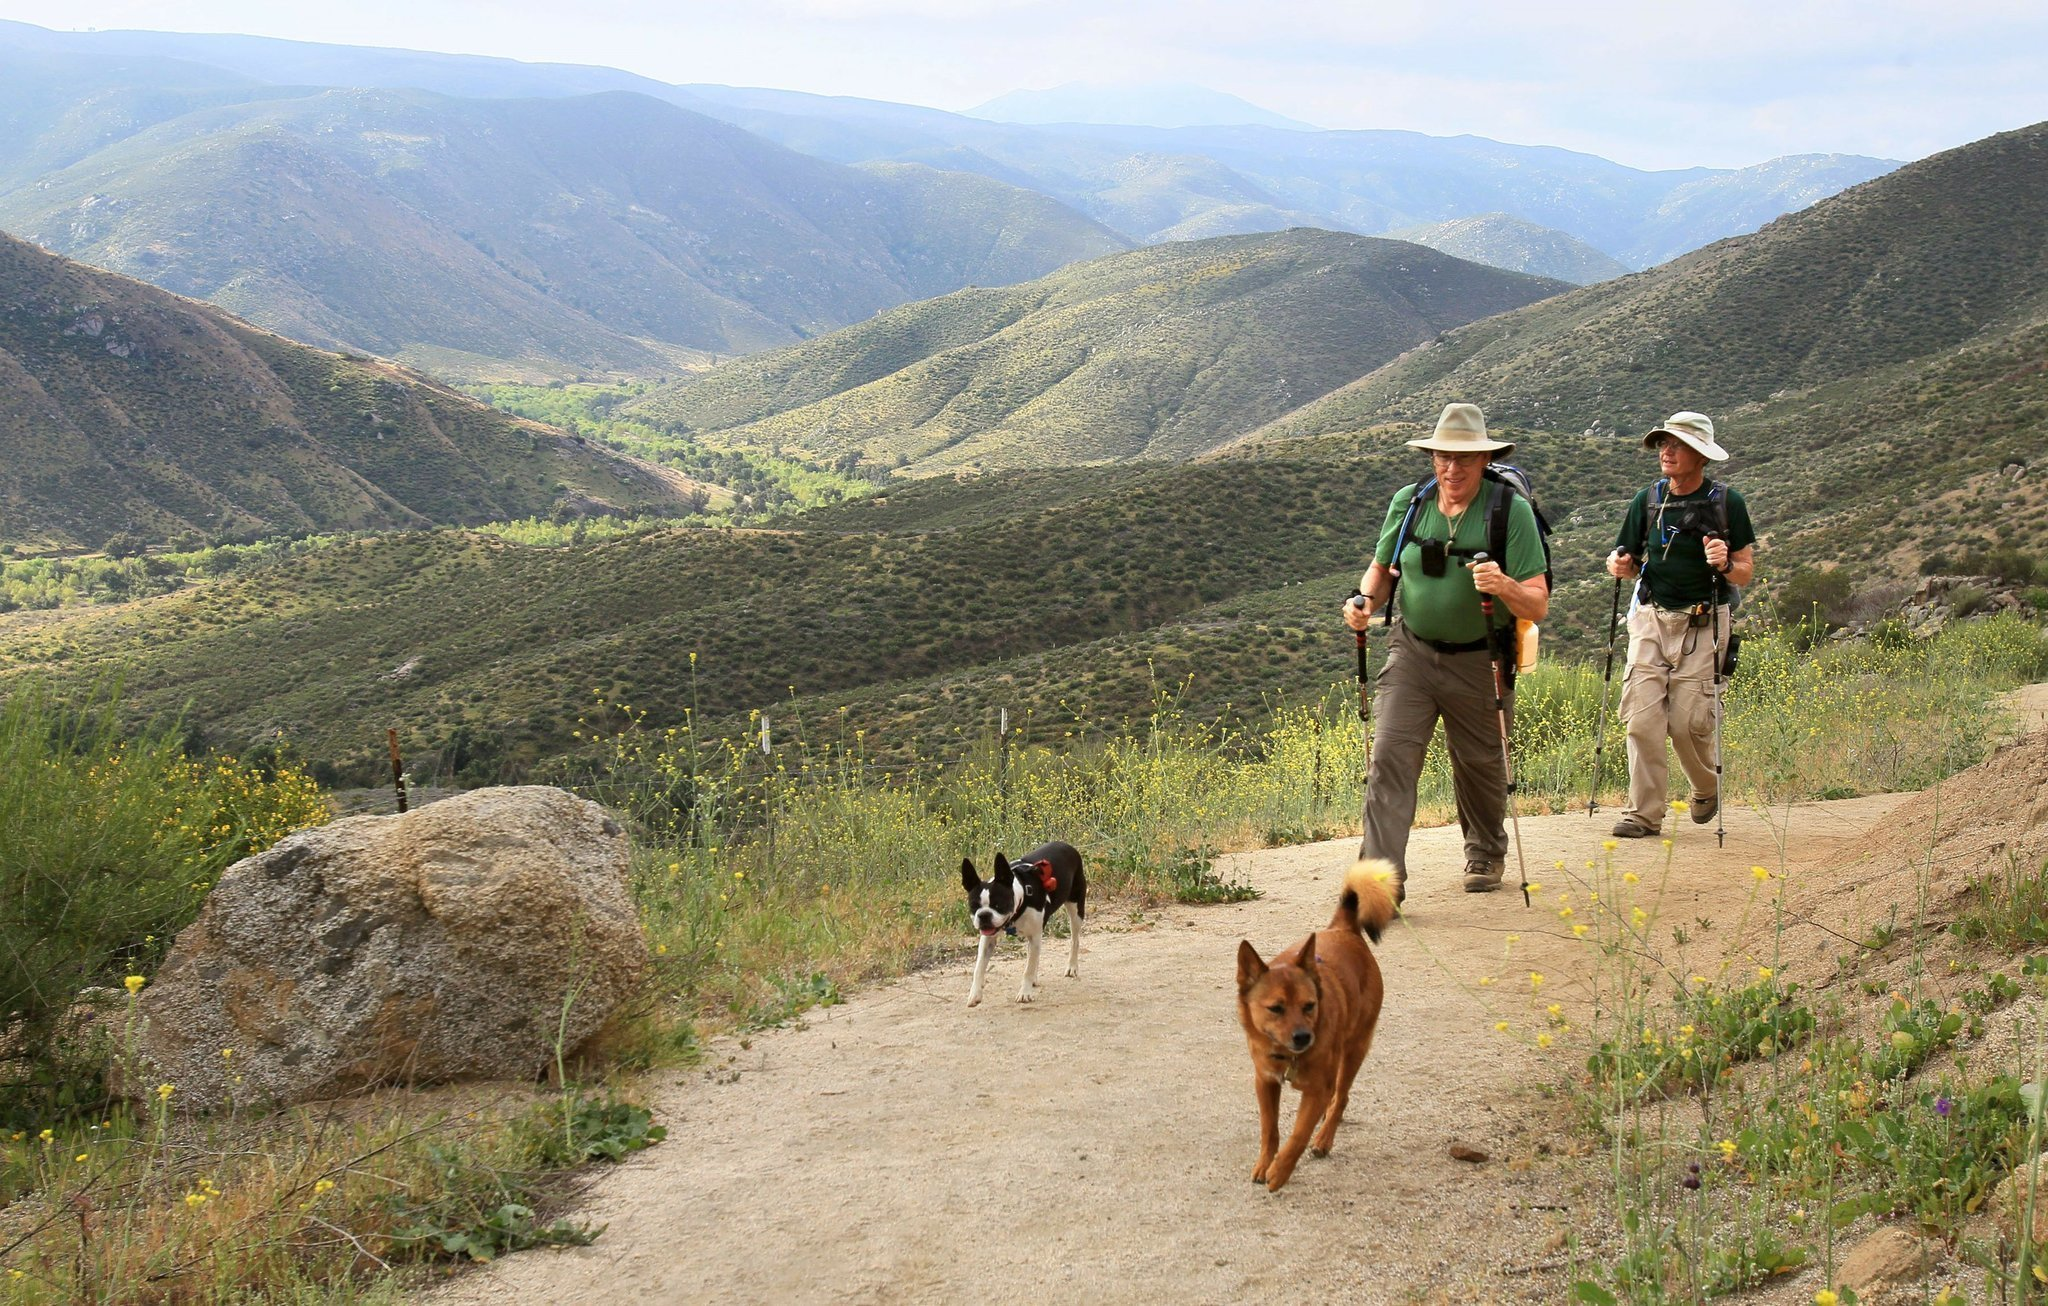 hikers ok with permit, new rules at falls - the san diego union-tribune